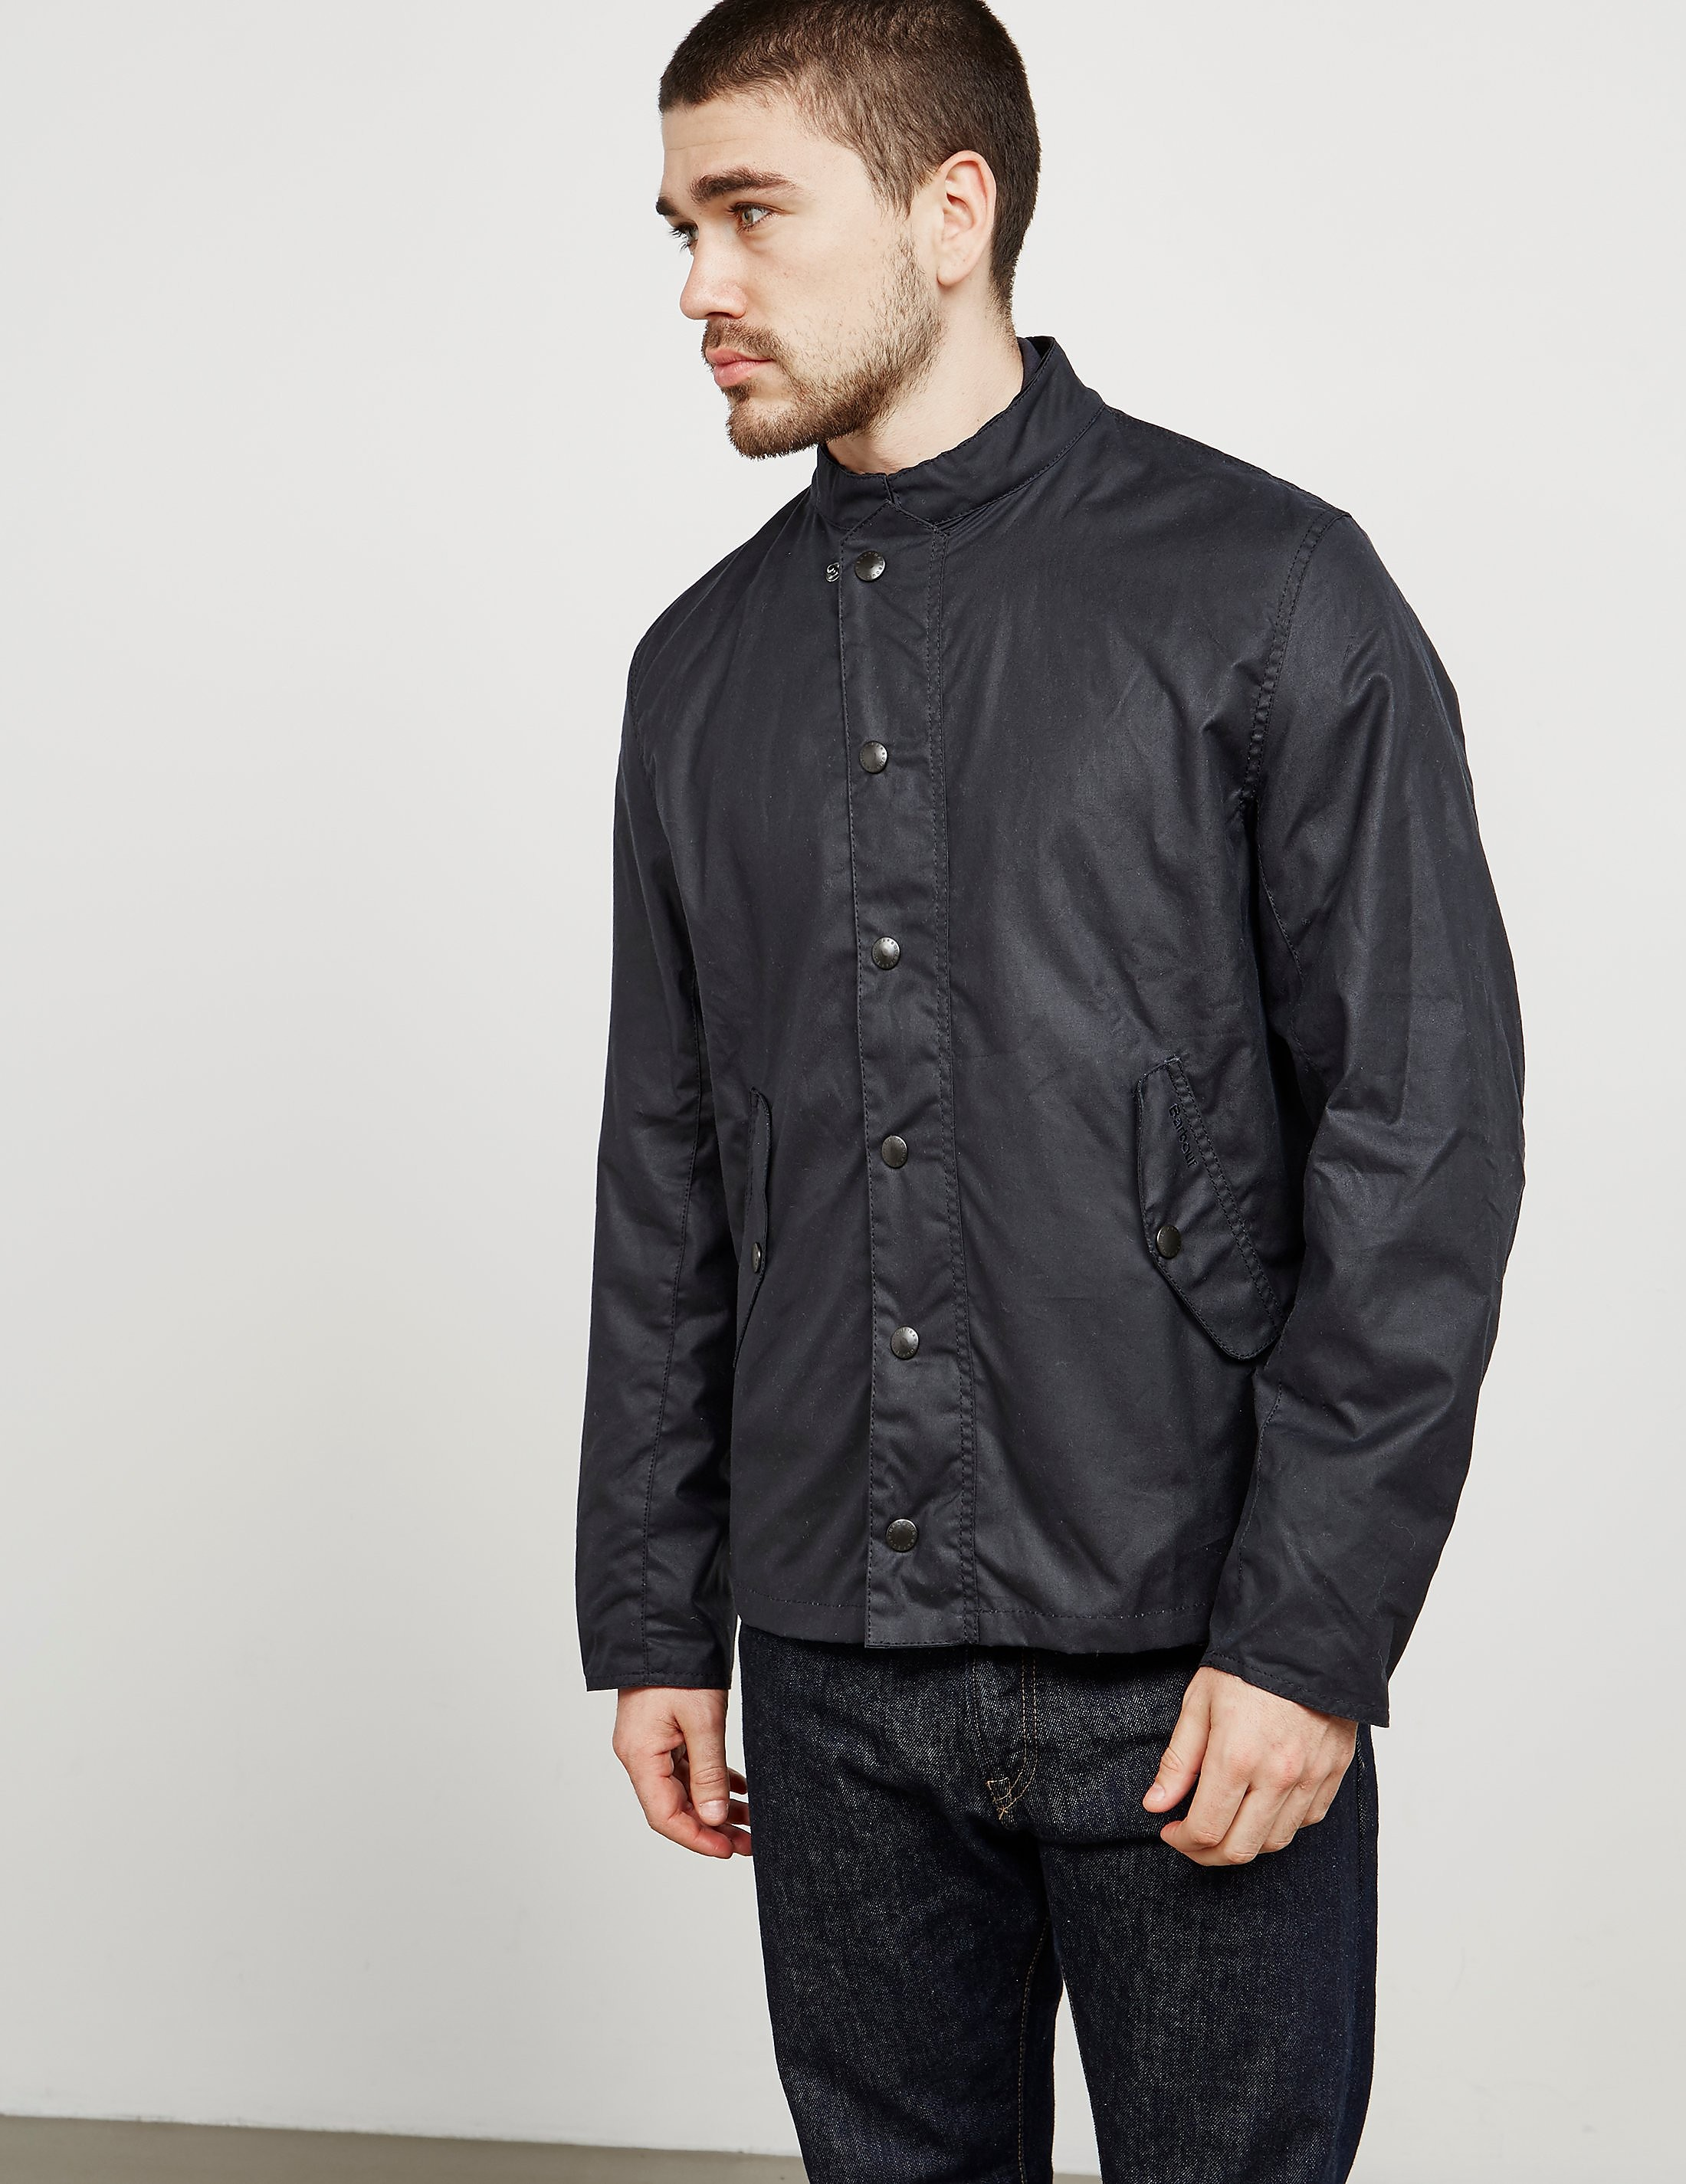 Barbour Heritage Ash Jacket